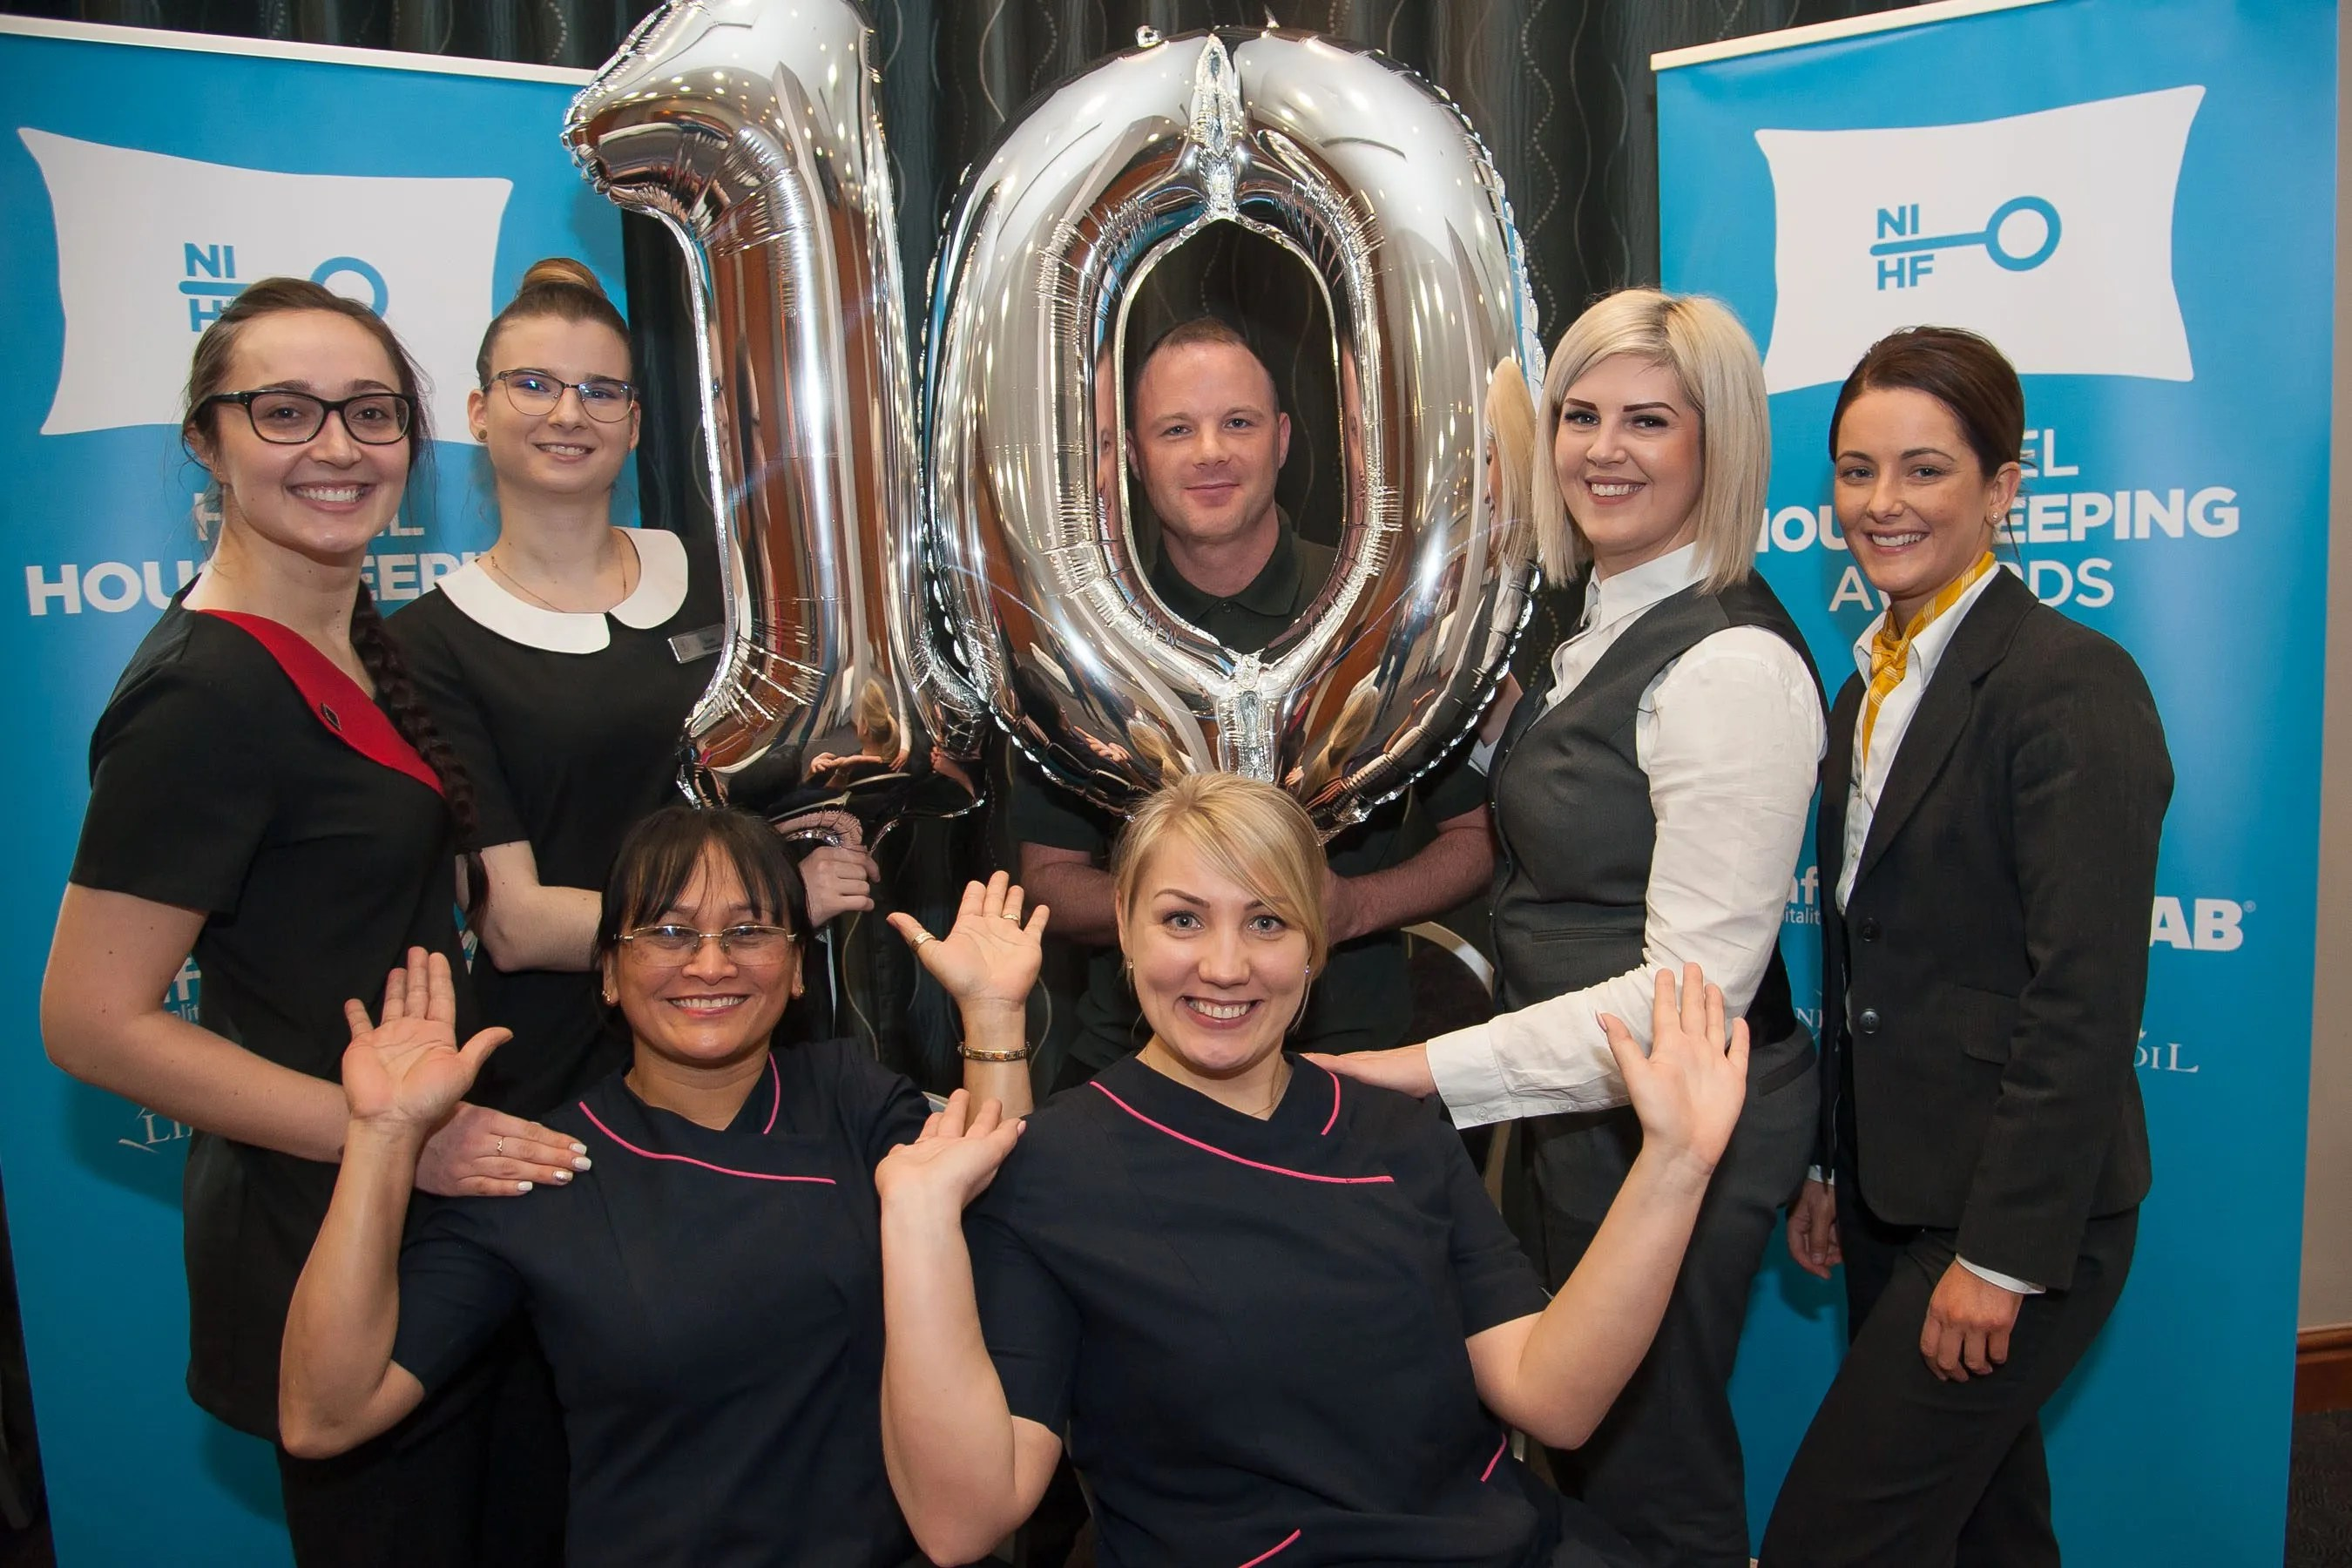 A Decade of Dedication – Housekeeping Awards Celebrate Tenth